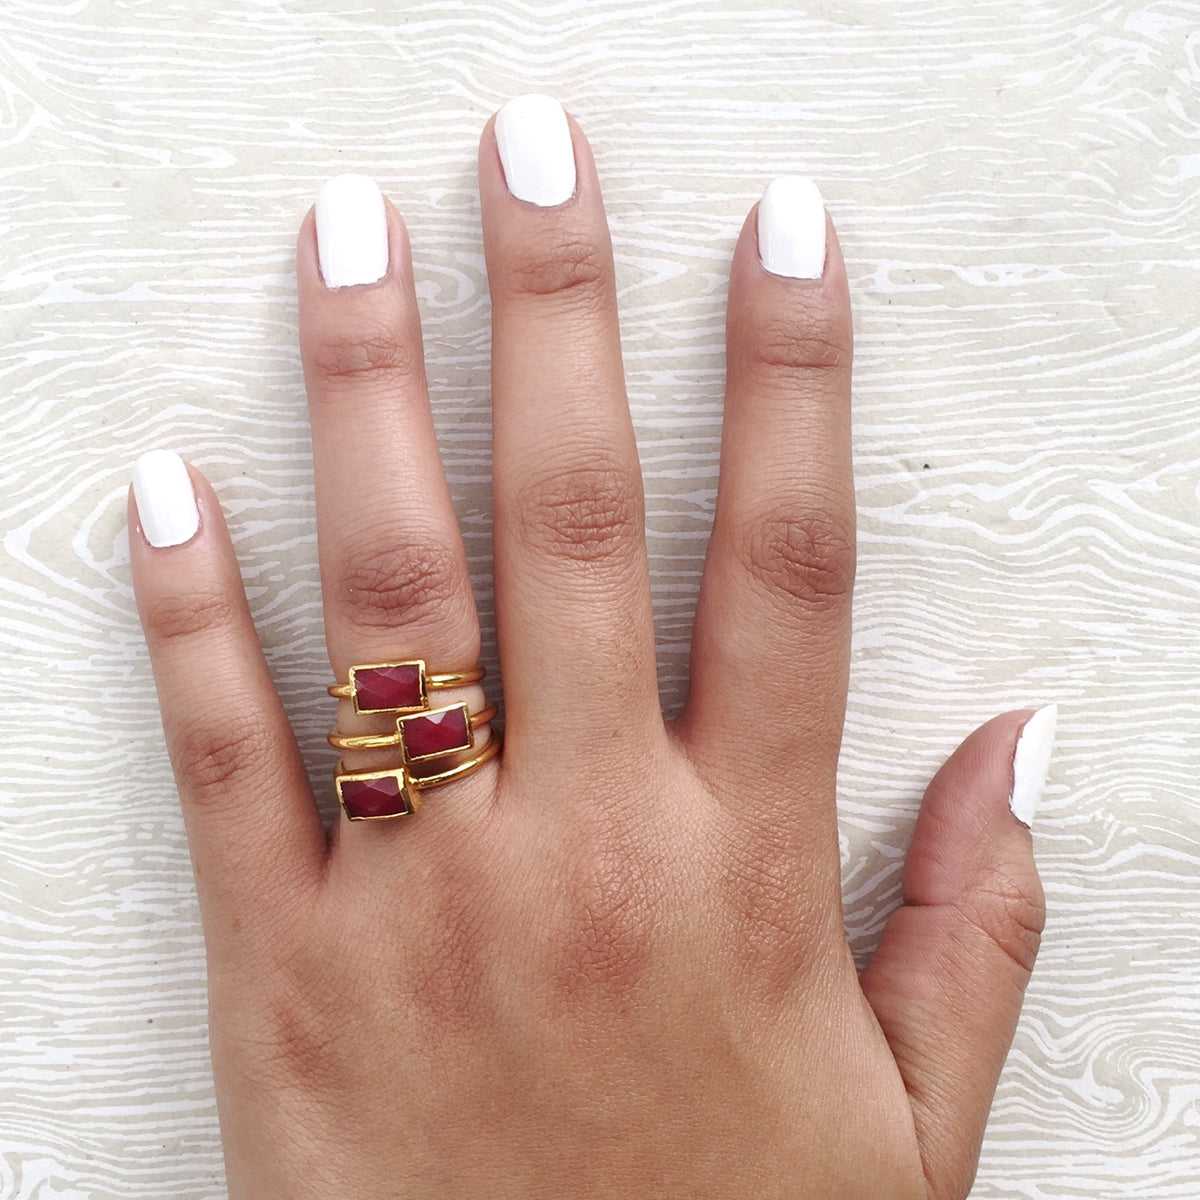 red rectangular stacking rings on hand